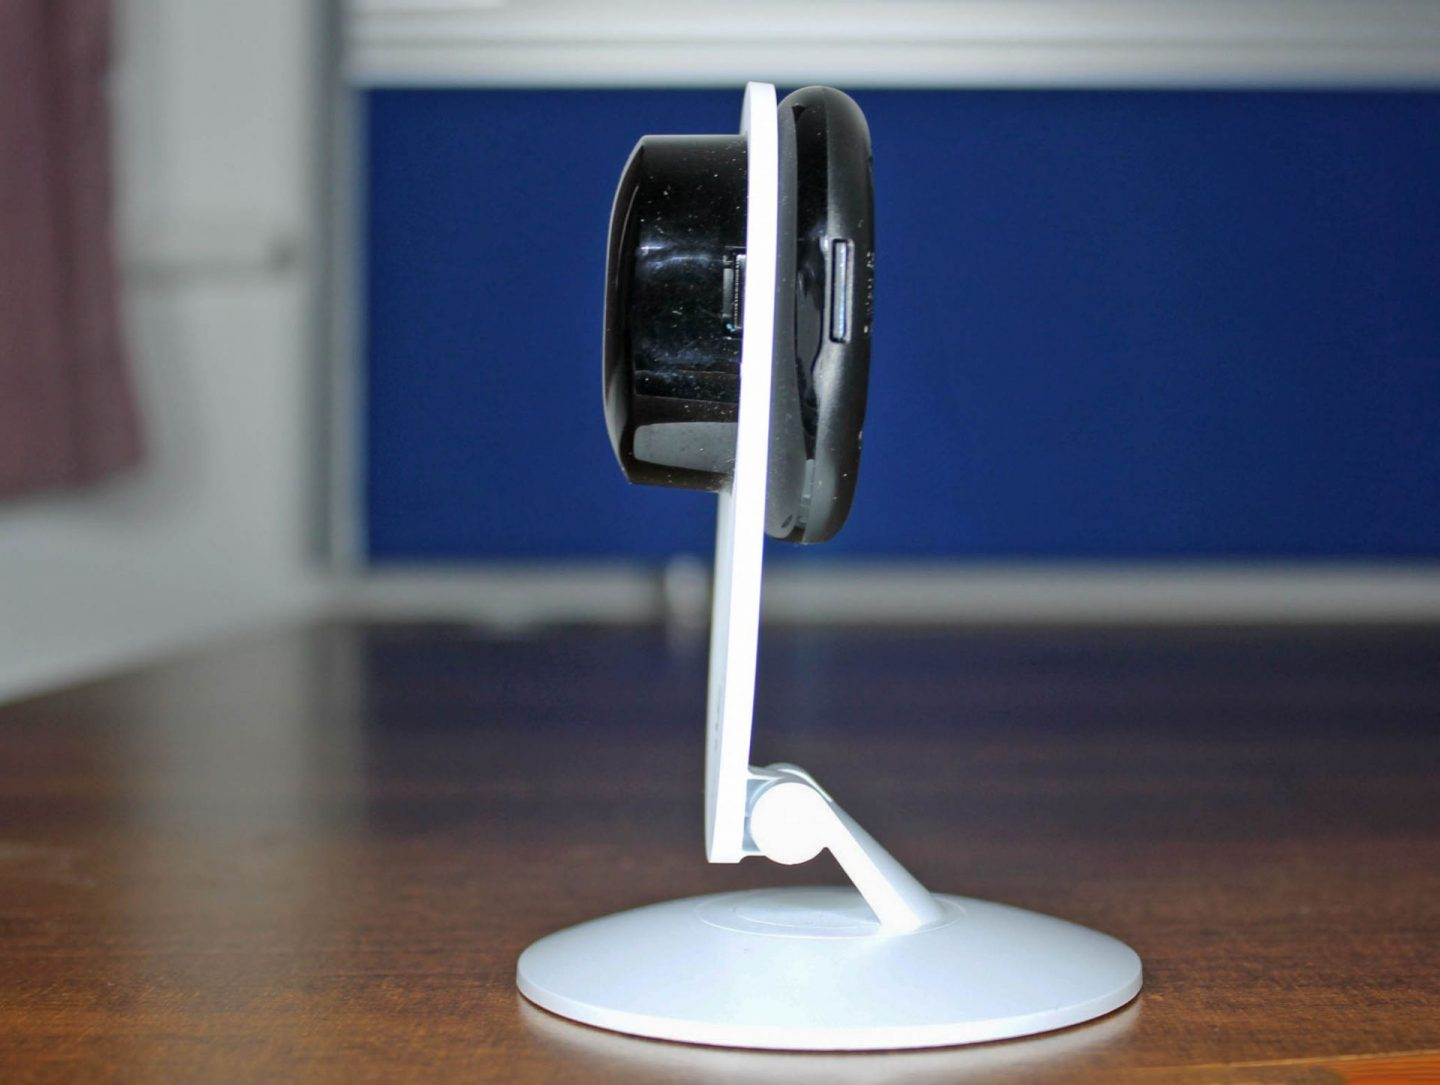 YI technology home security camera in profile